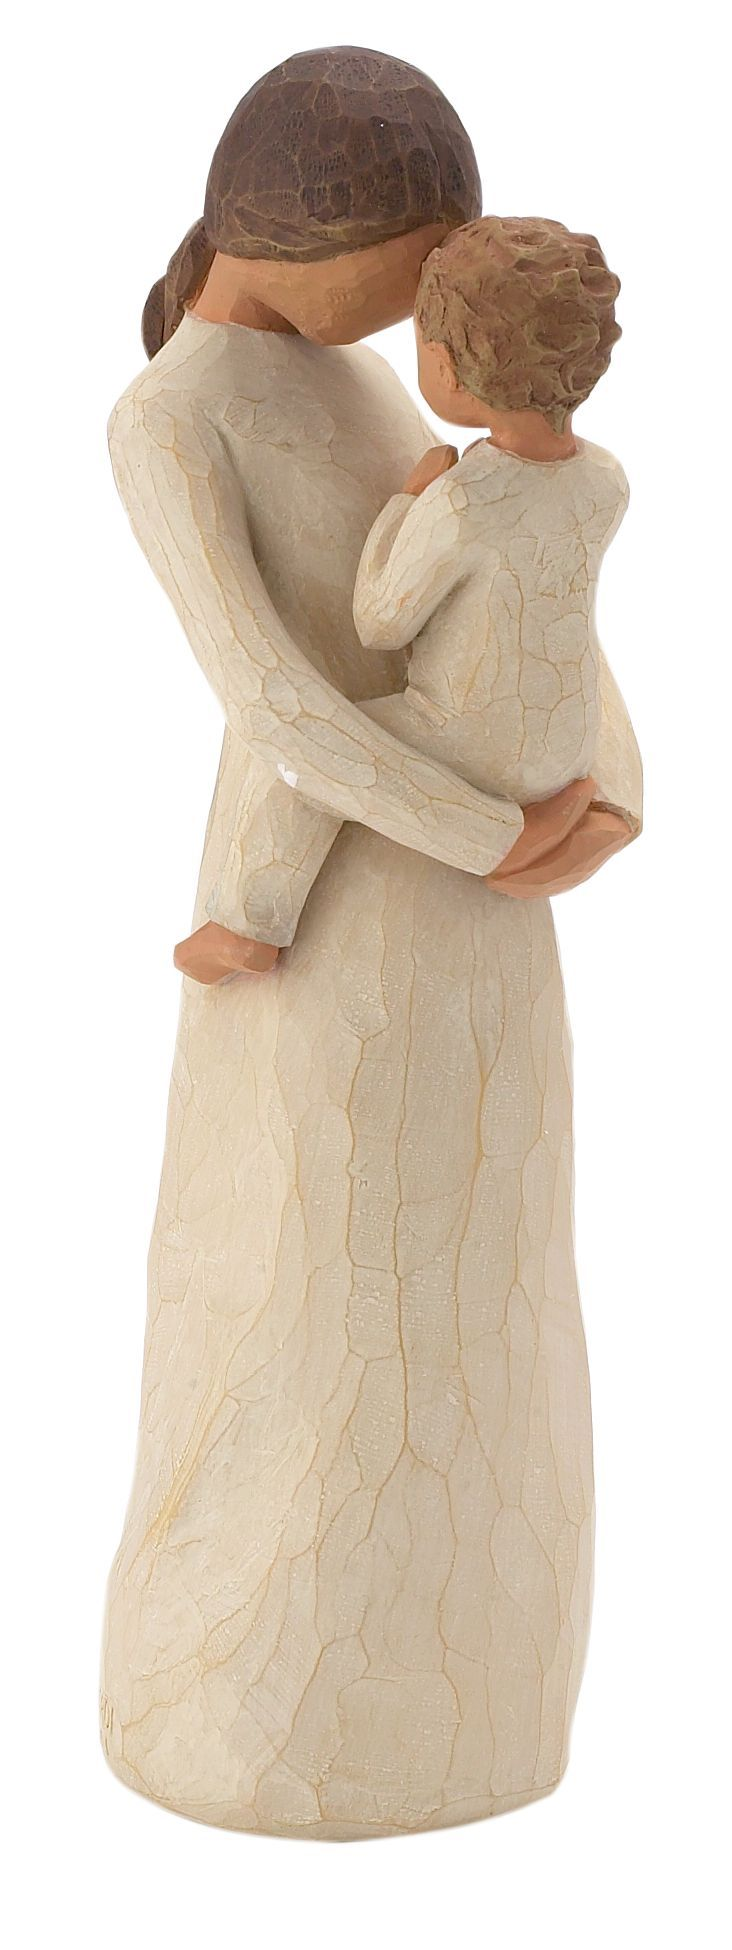 Pin By Gretchen On פיסול Willow Tree Figurines Willow Tree Statues Willow Tree Angels